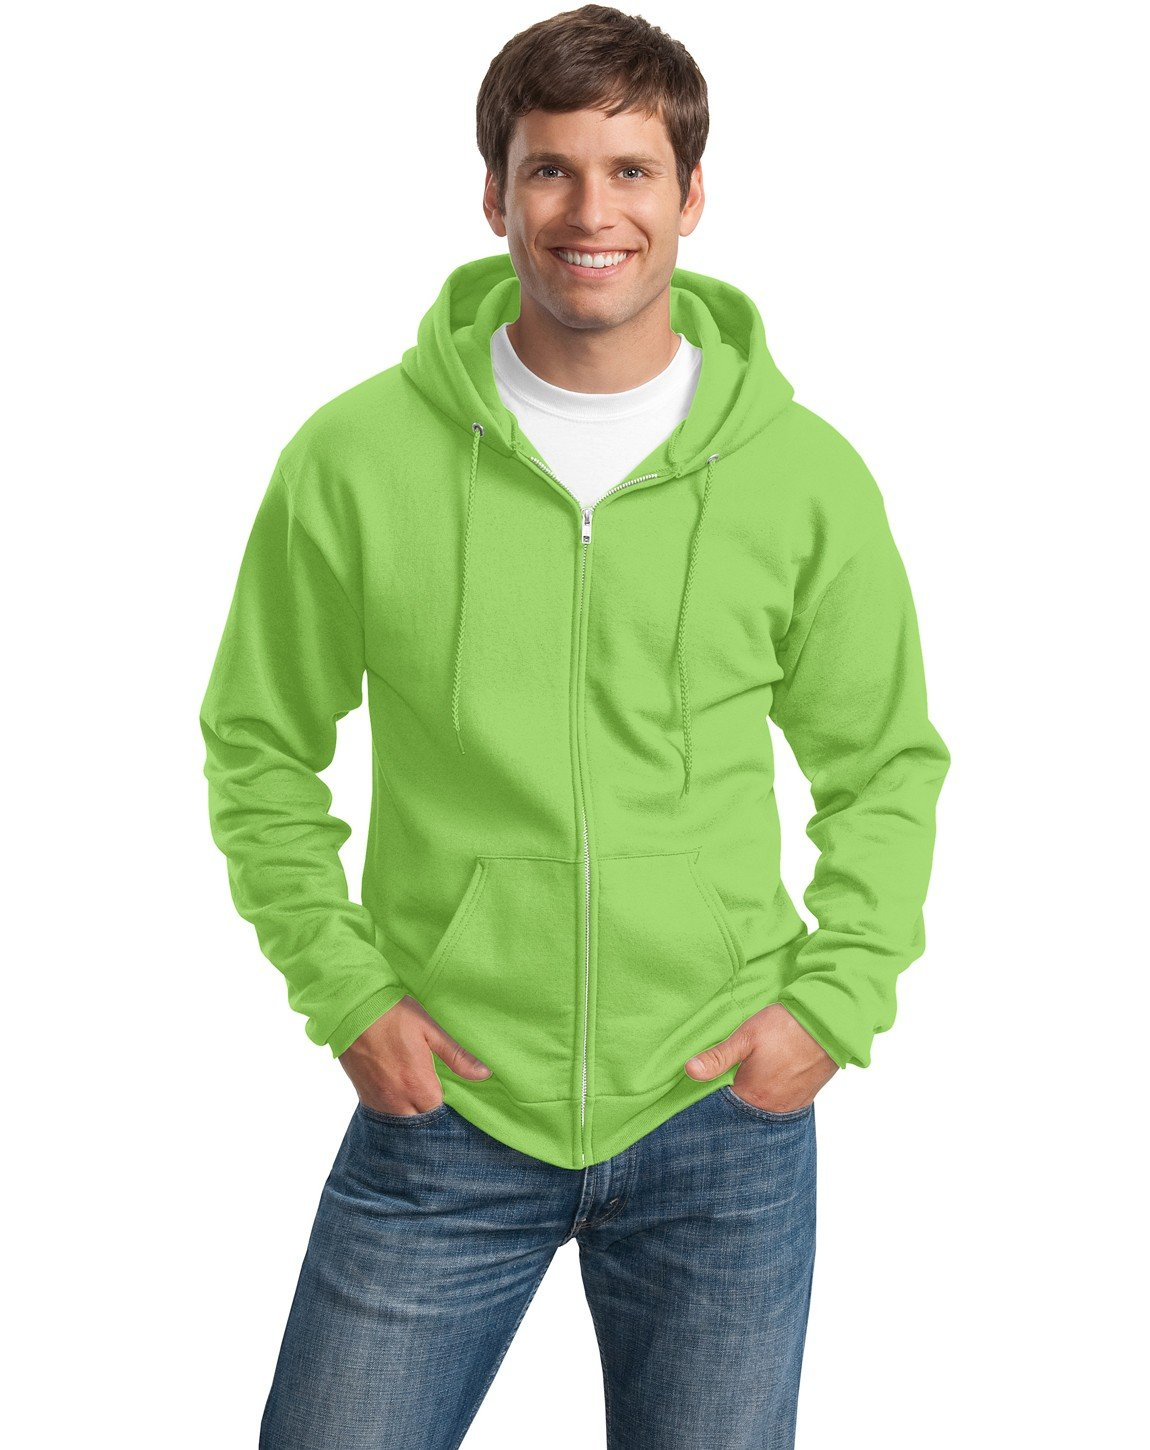 Port & Company Men's Classic Full Zip Hooded Sweatshirt XL Lime by Port & Company